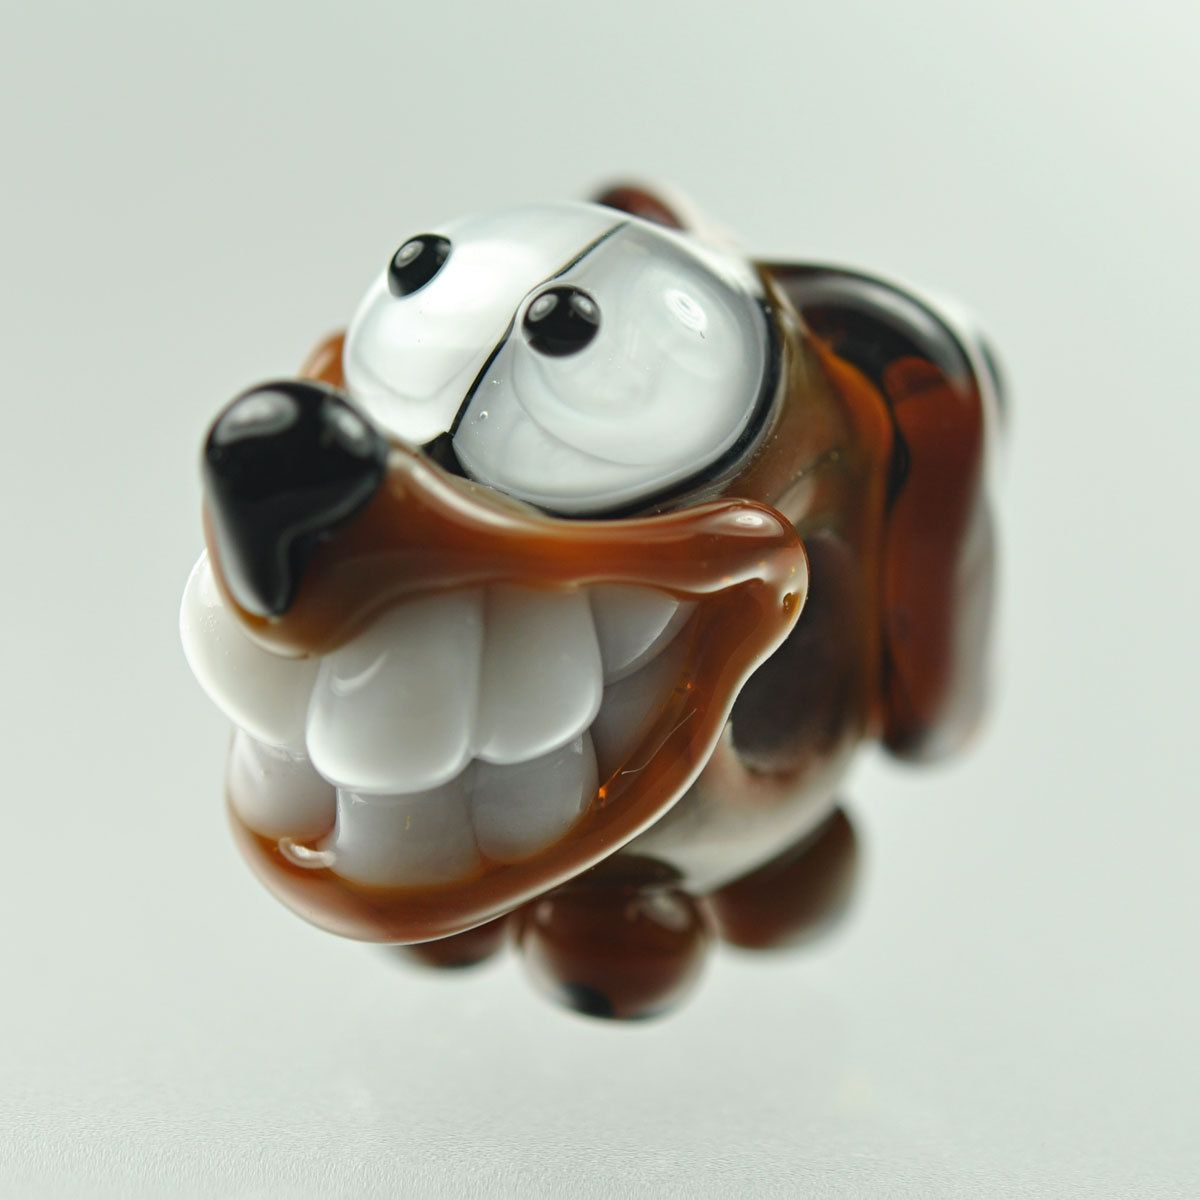 Brown Dog Big Hole Bead - Brown and White - Handmade Lampwork by Puddy Tat Glass. $25.00, via Etsy.